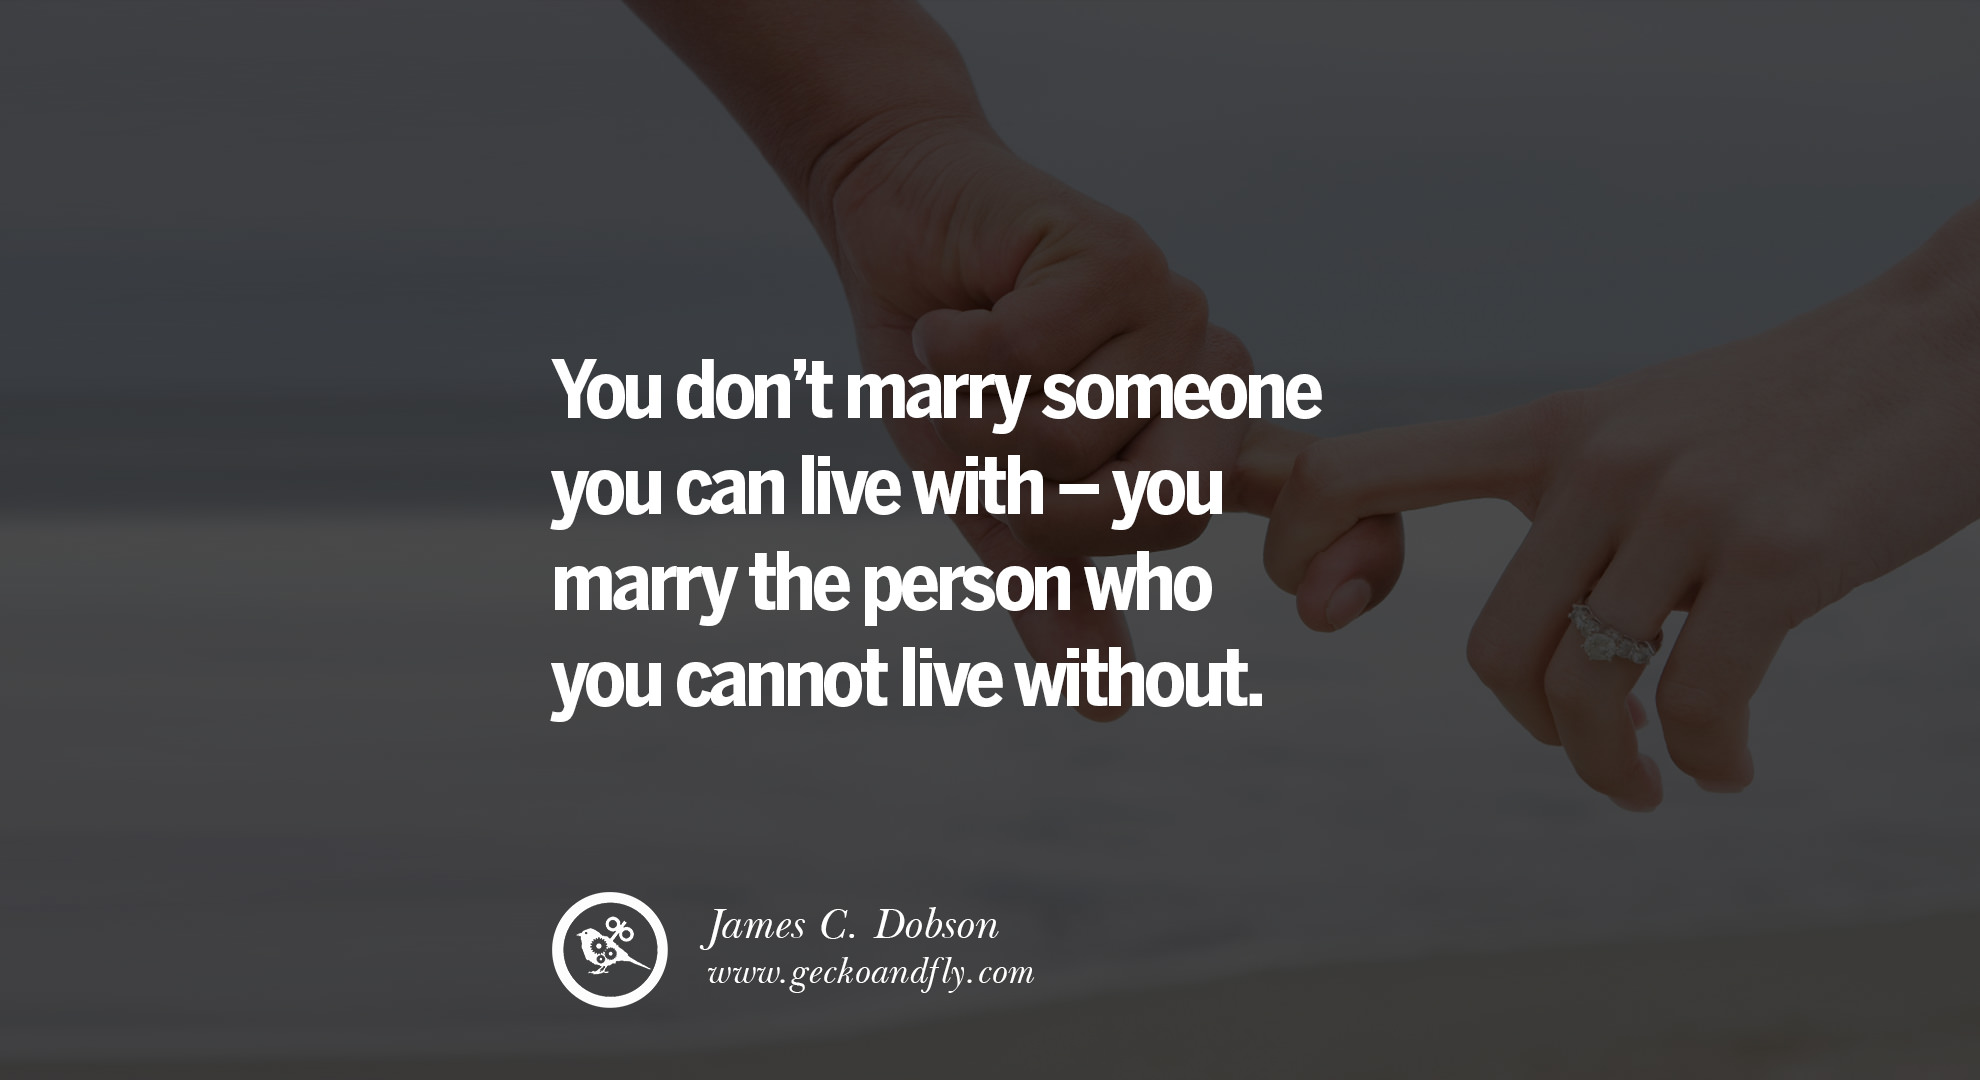 Quotes Of Love And Life Classy 40 Romantic Quotes About Love Life Marriage And Relationships